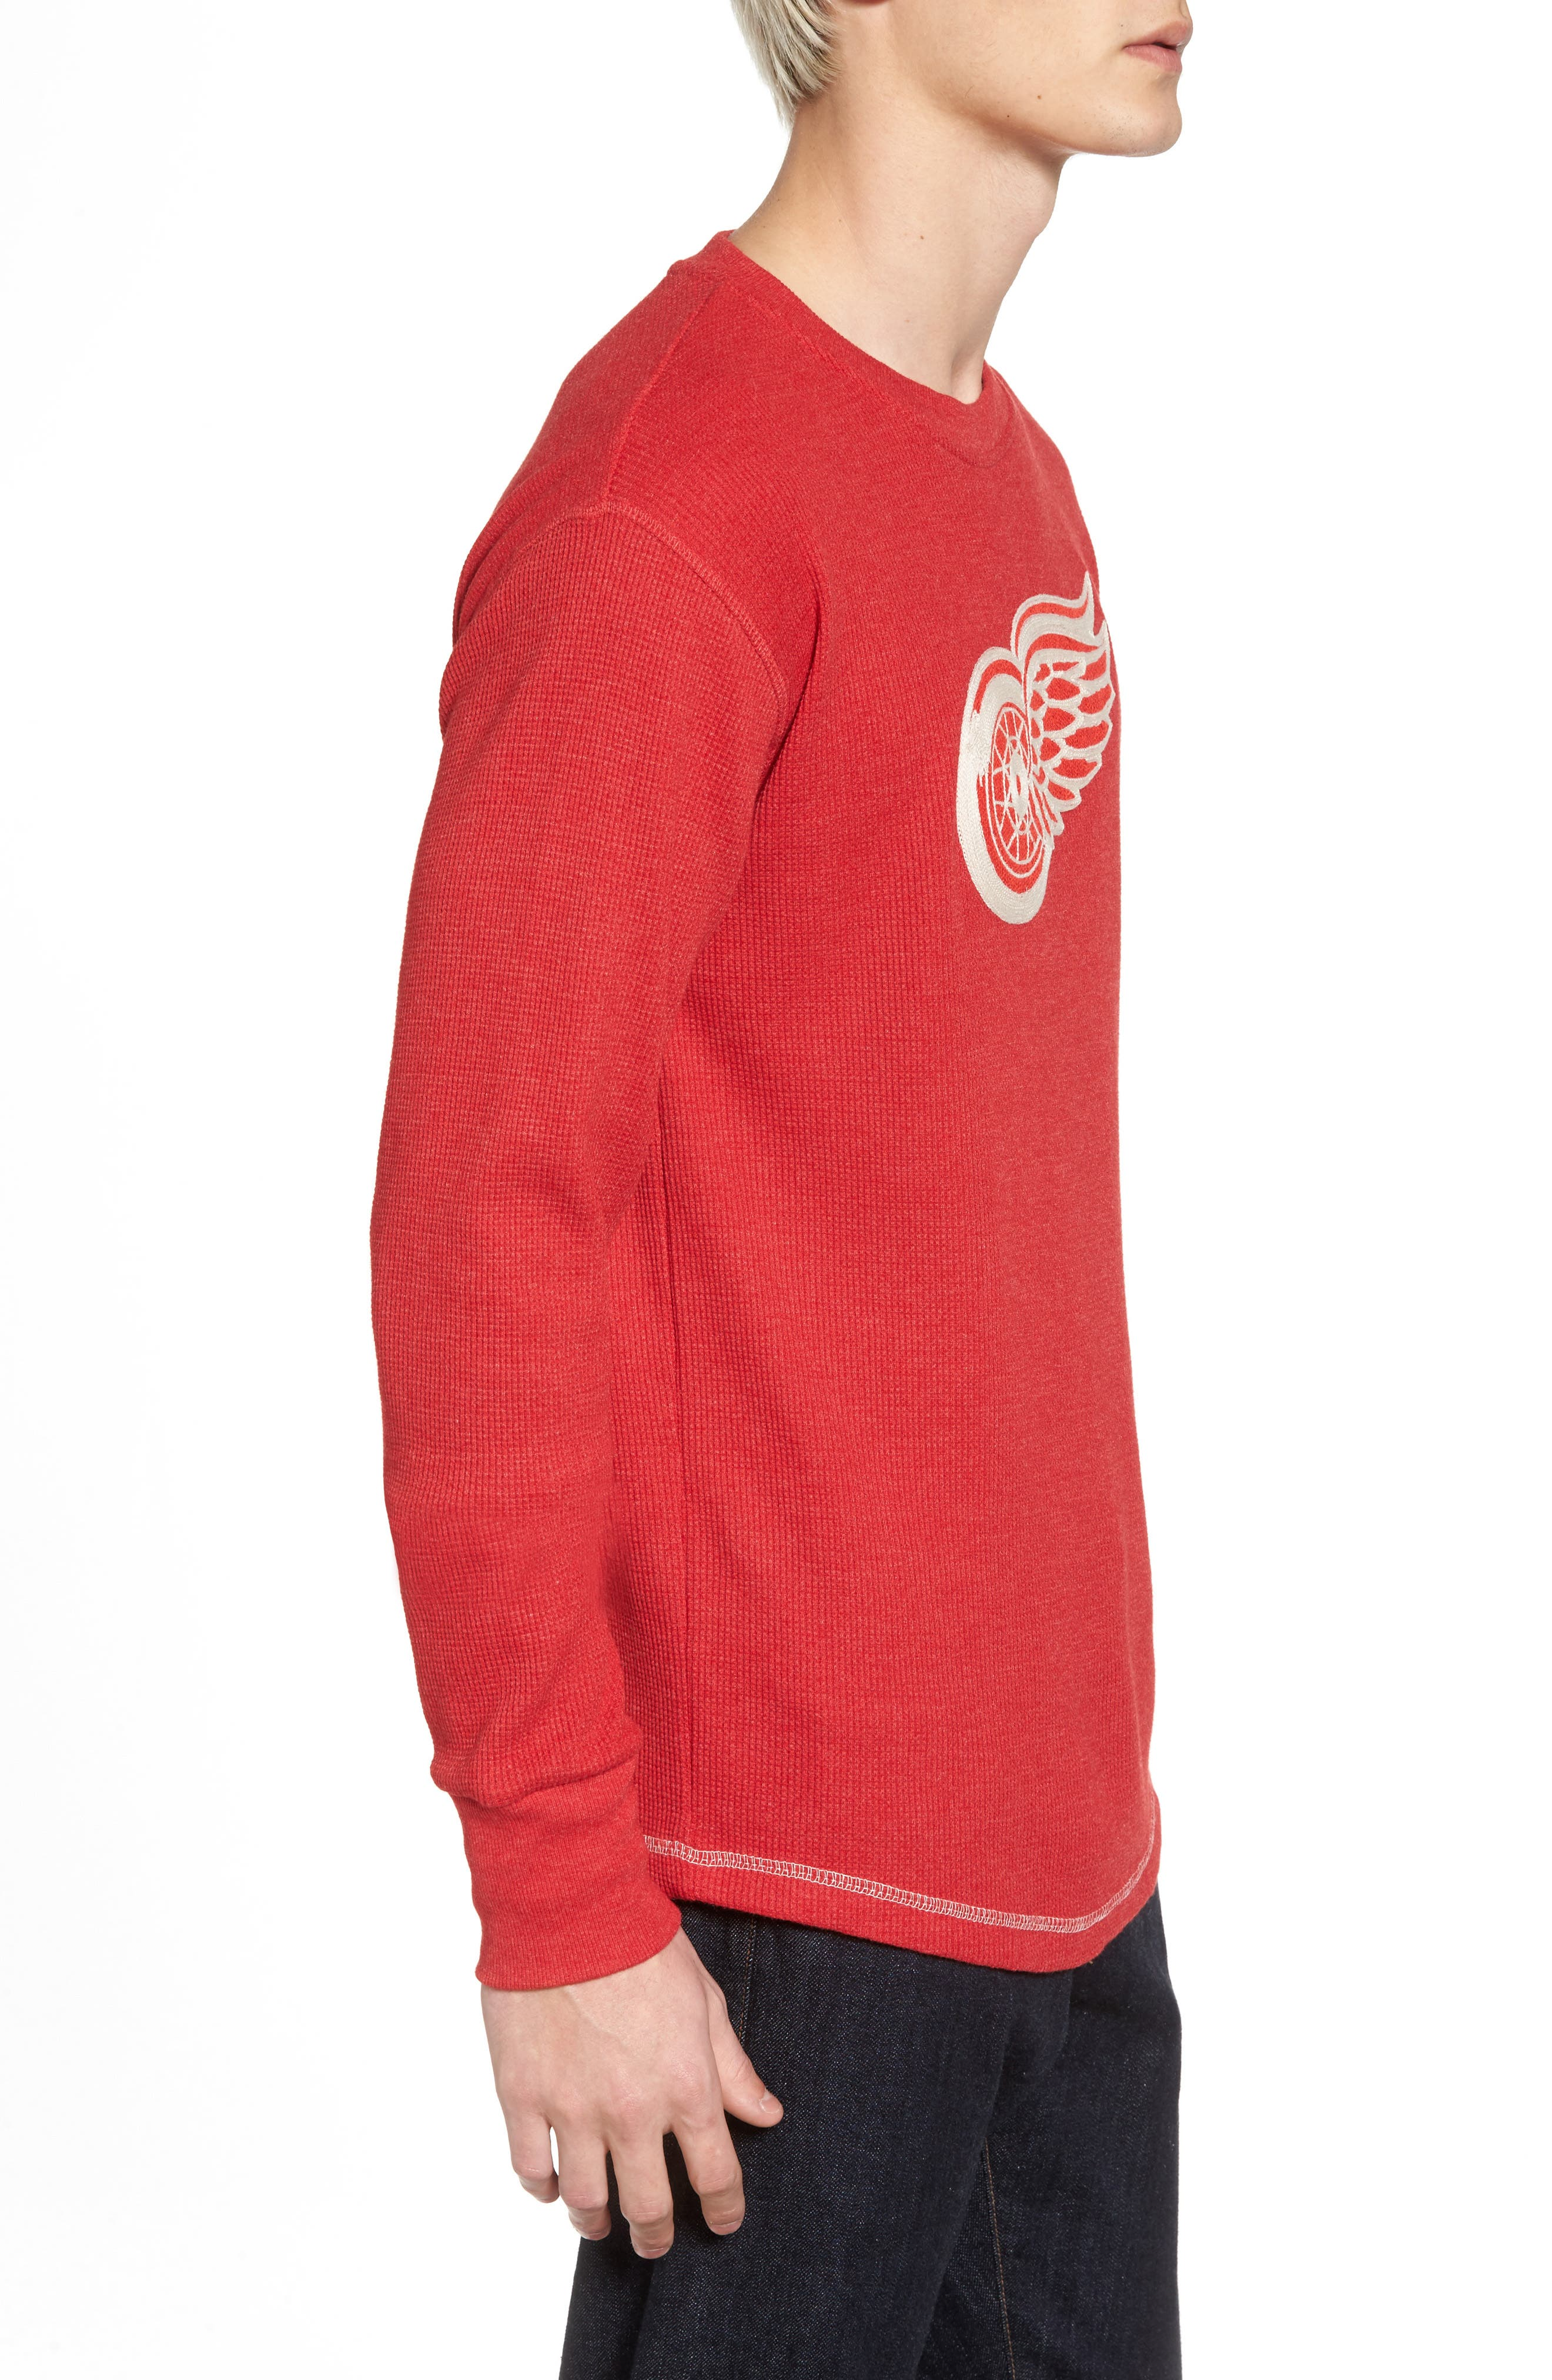 Detroit Red Wings Embroidered Long Sleeve Thermal Shirt,                             Alternate thumbnail 3, color,                             Red